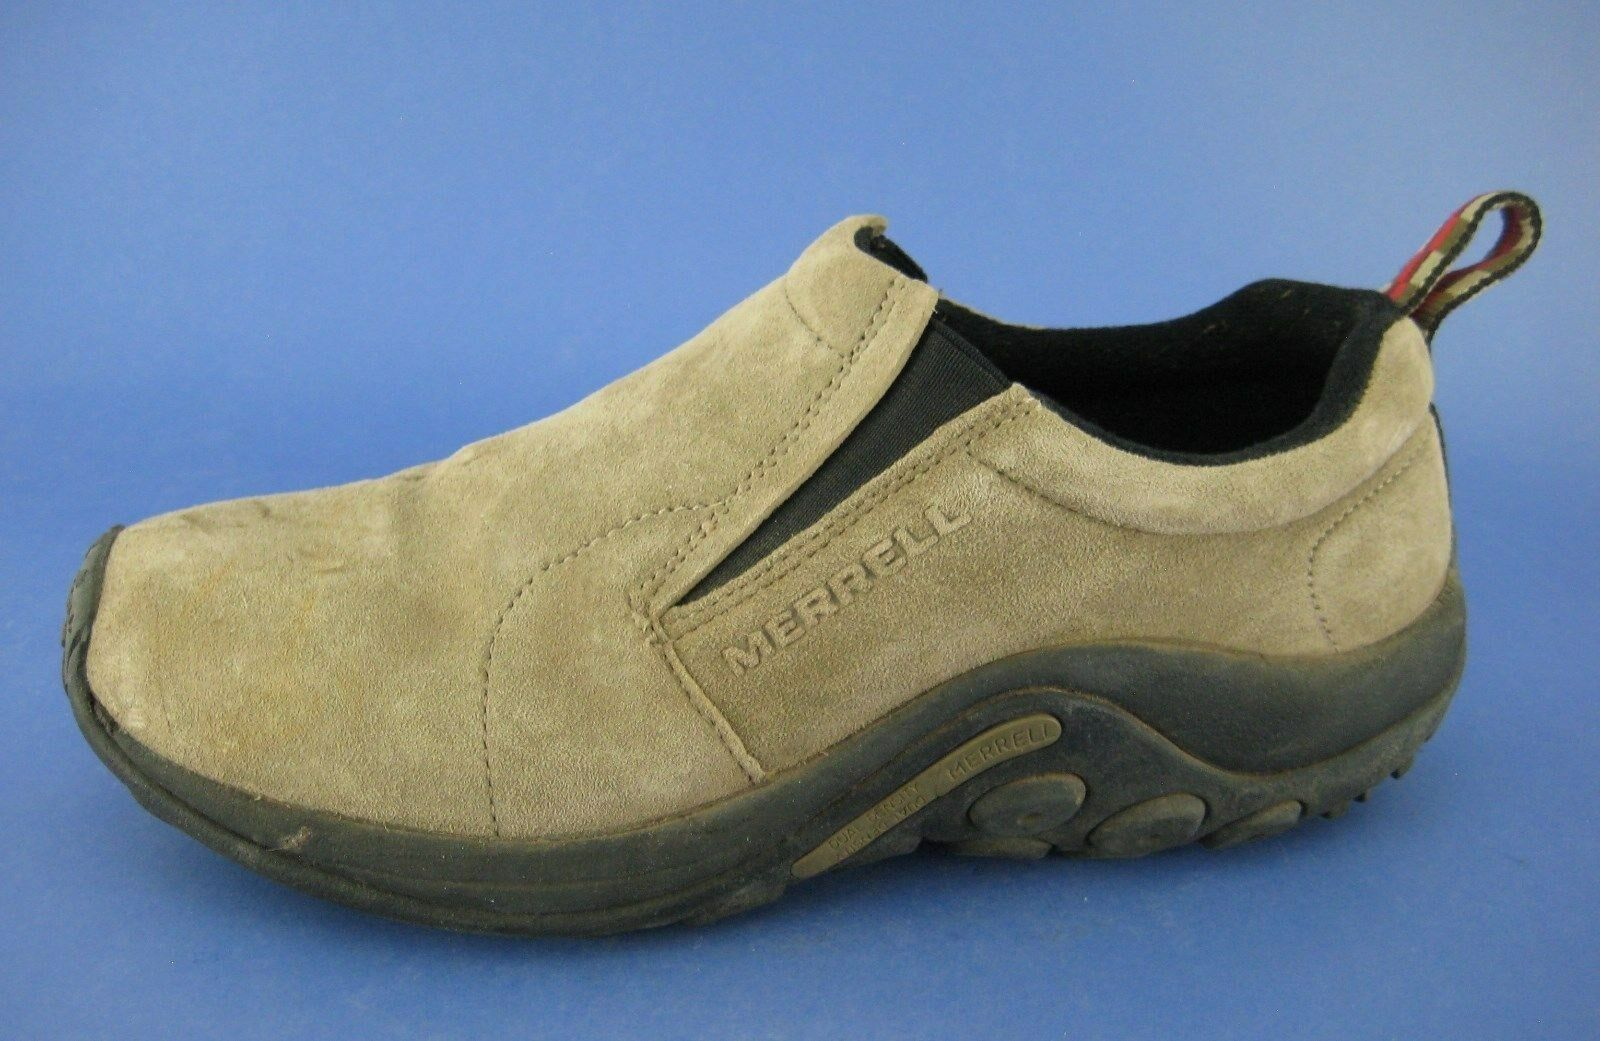 Merrell Jungle Moc shoes Taupe Suede with Rubber Sole Slip On Size 9.5